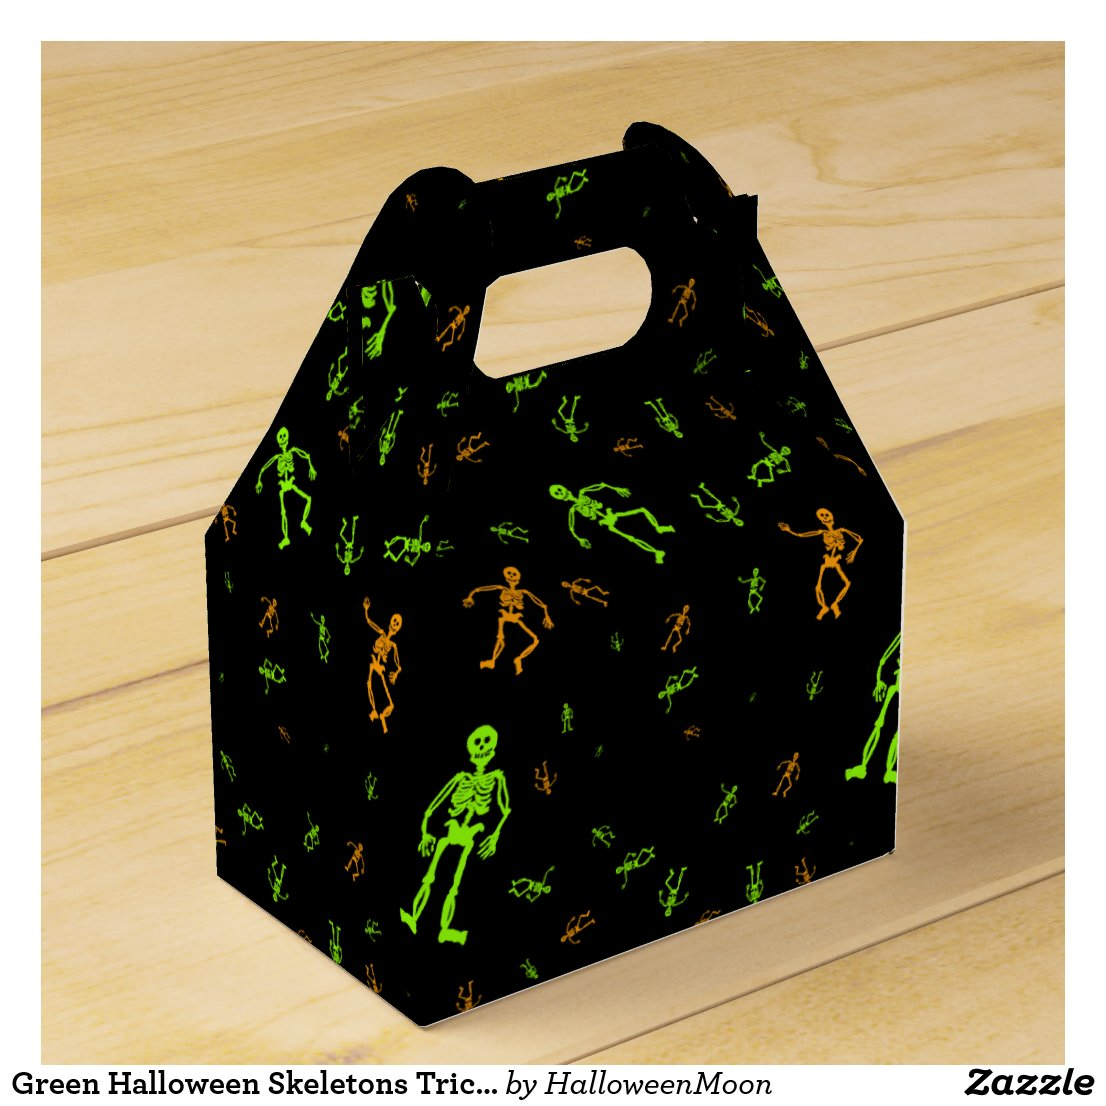 Green Halloween Skeletons Trick or Treat Favor Box